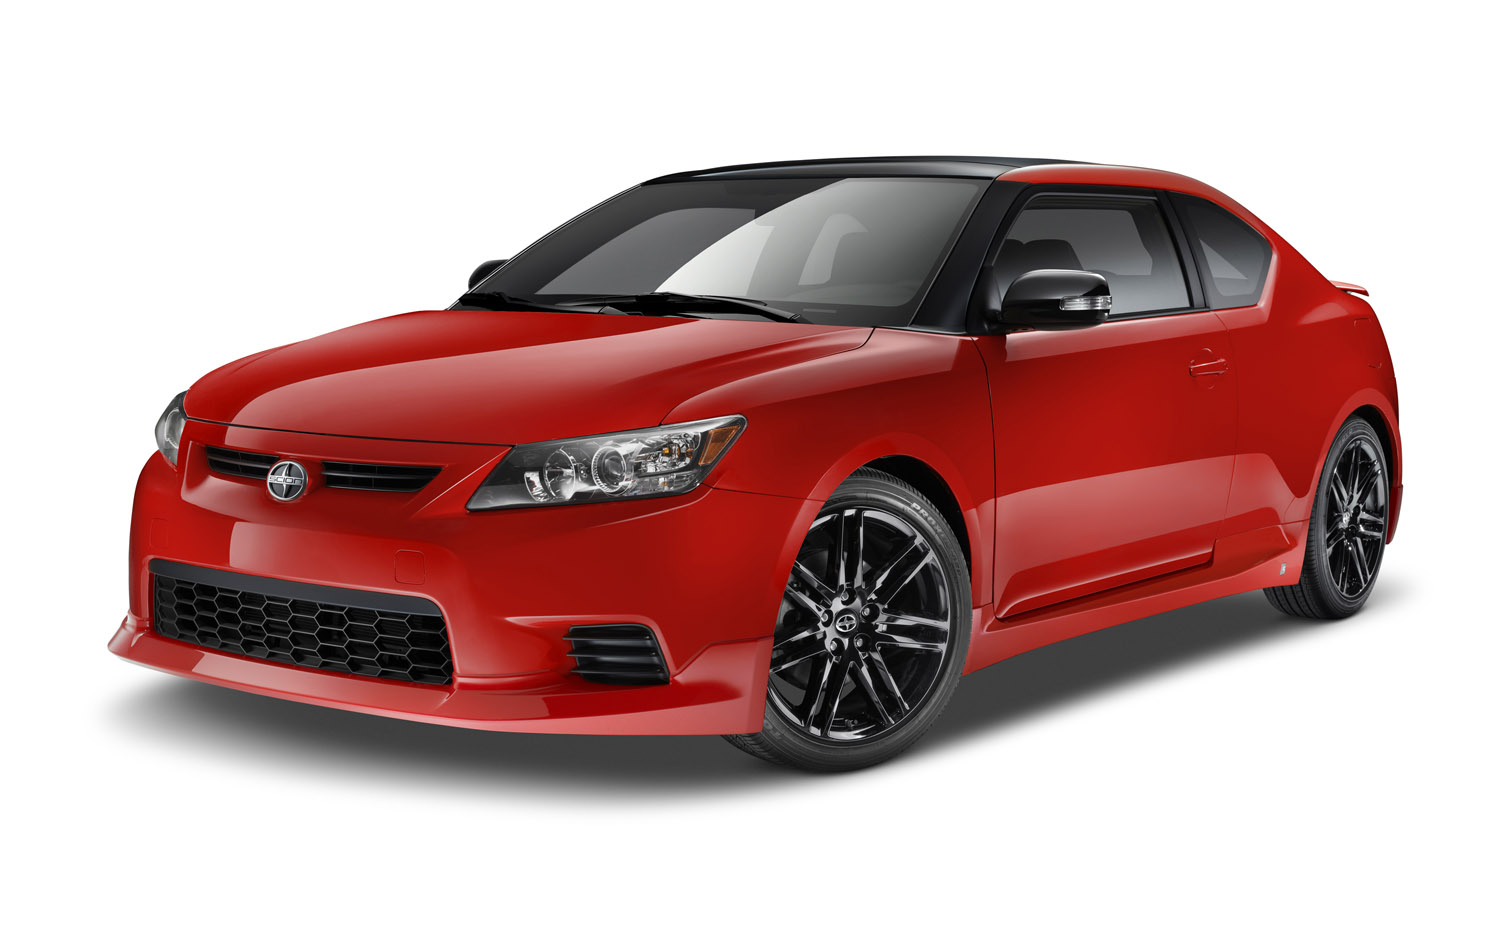 burien toyota blog scion celebrates 10 years with new 2014 scion tc limited edition vehicles. Black Bedroom Furniture Sets. Home Design Ideas